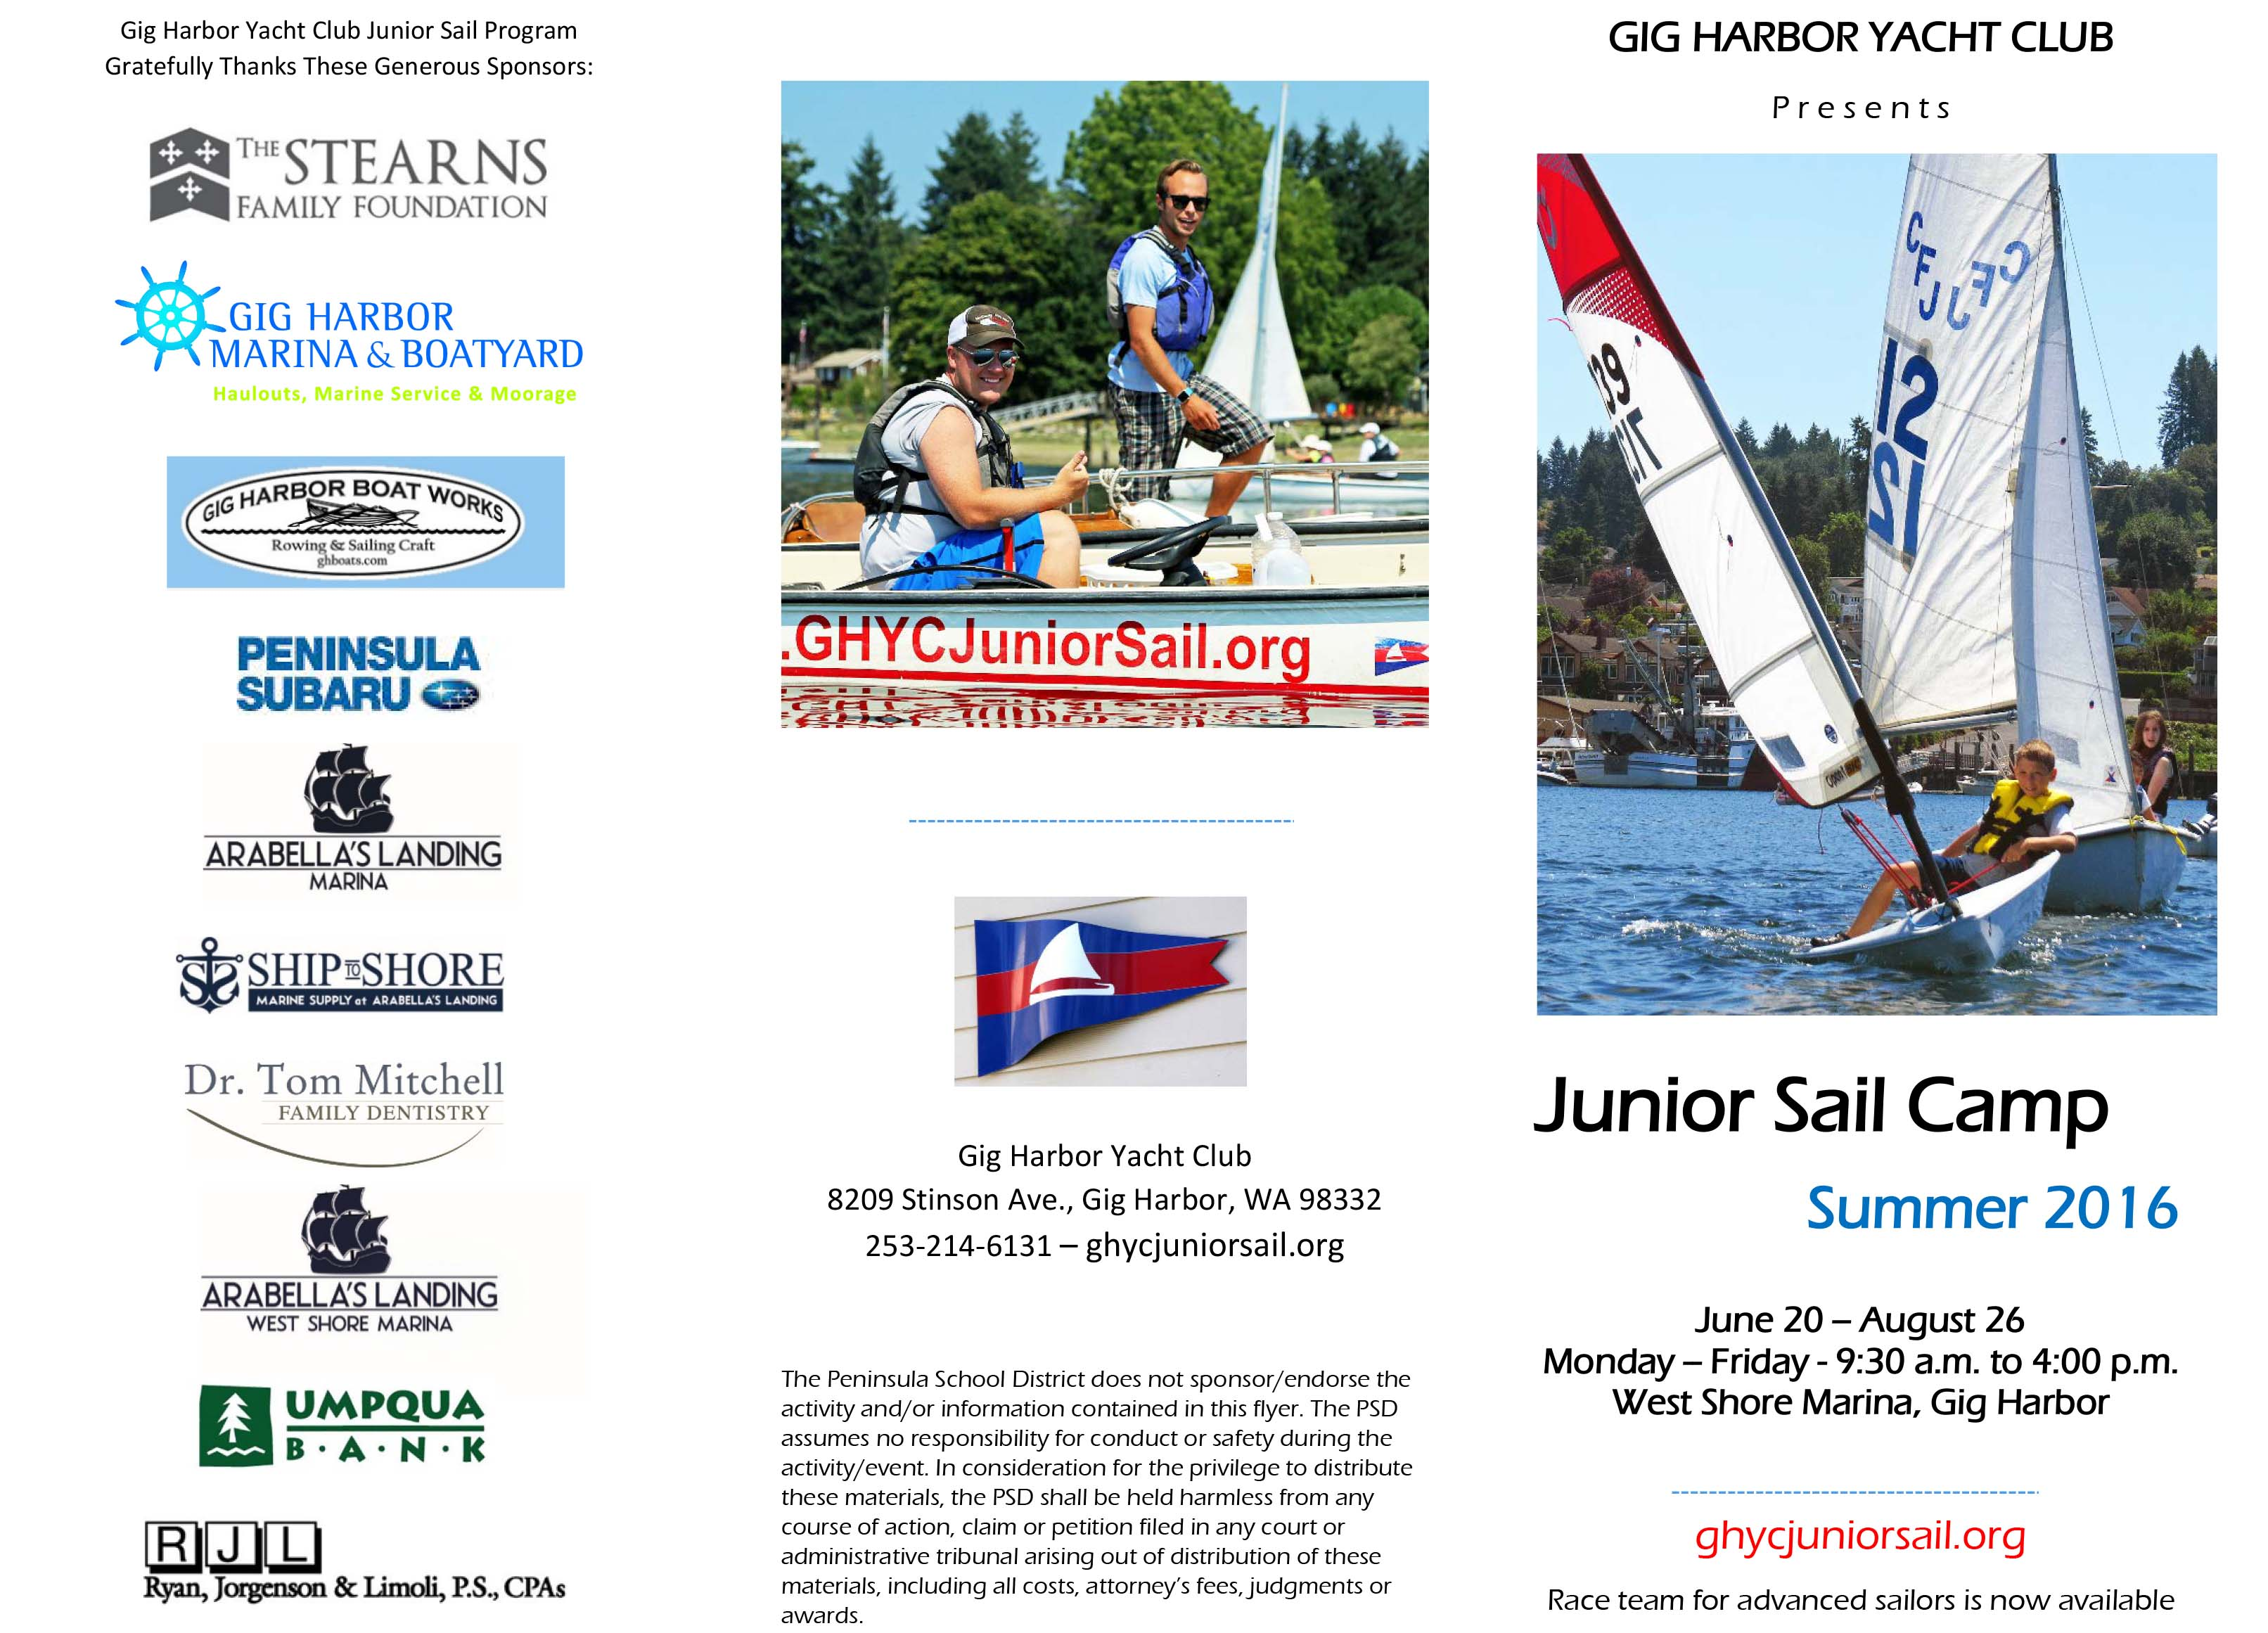 GHYC Junior Sail Camp Summer 2016 1